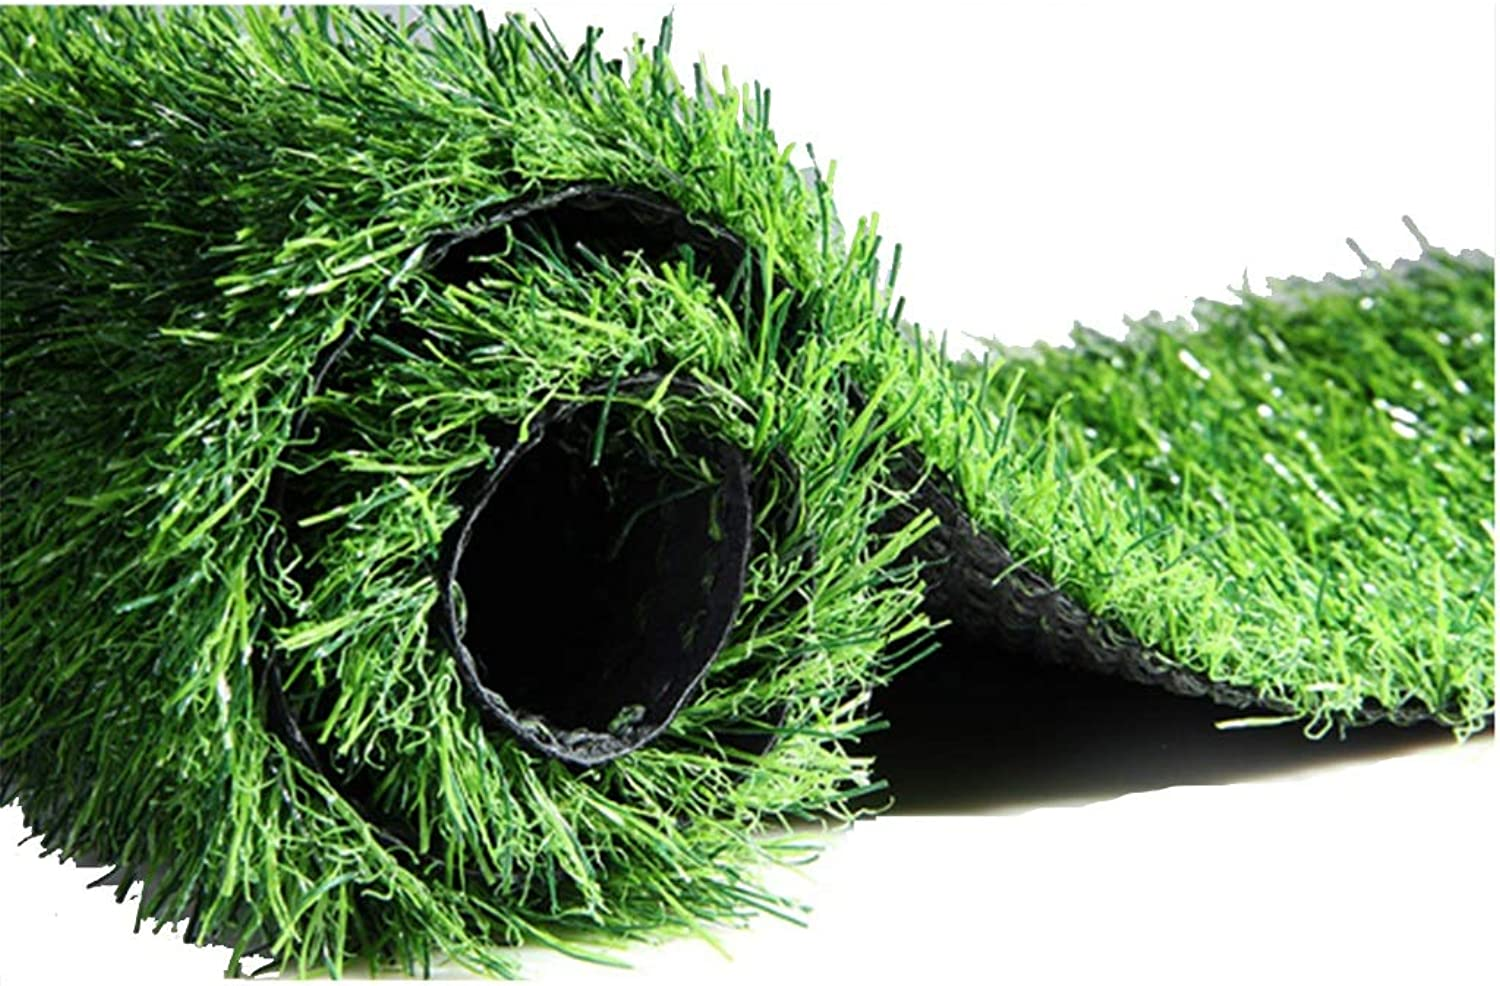 Artificial Turf 30mm Pile Height Artificial Grass, Realistic and Thick Fake Imitation Straw Mat, Outdoor Rug Balcony and Terrace (Size   1x13m)